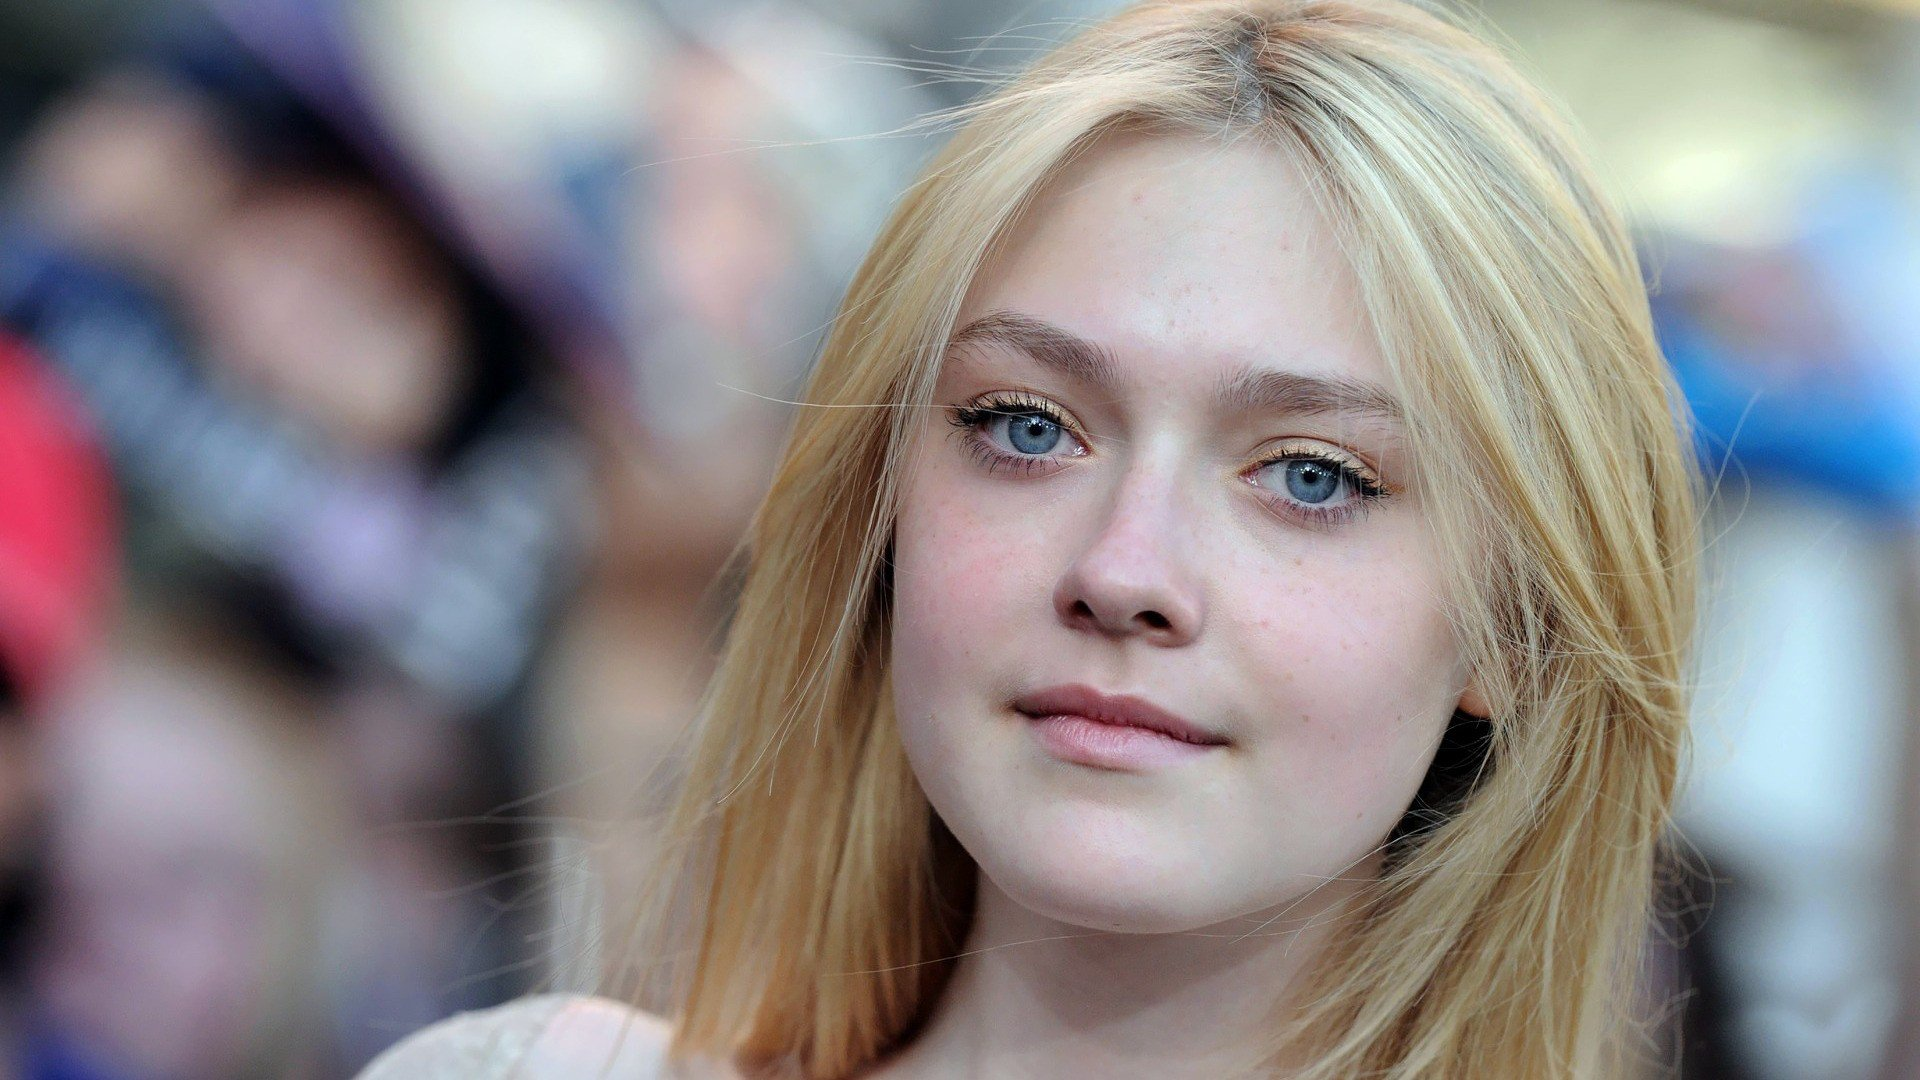 131 Dakota Fanning HD Wallpapers Background Images 1920x1080